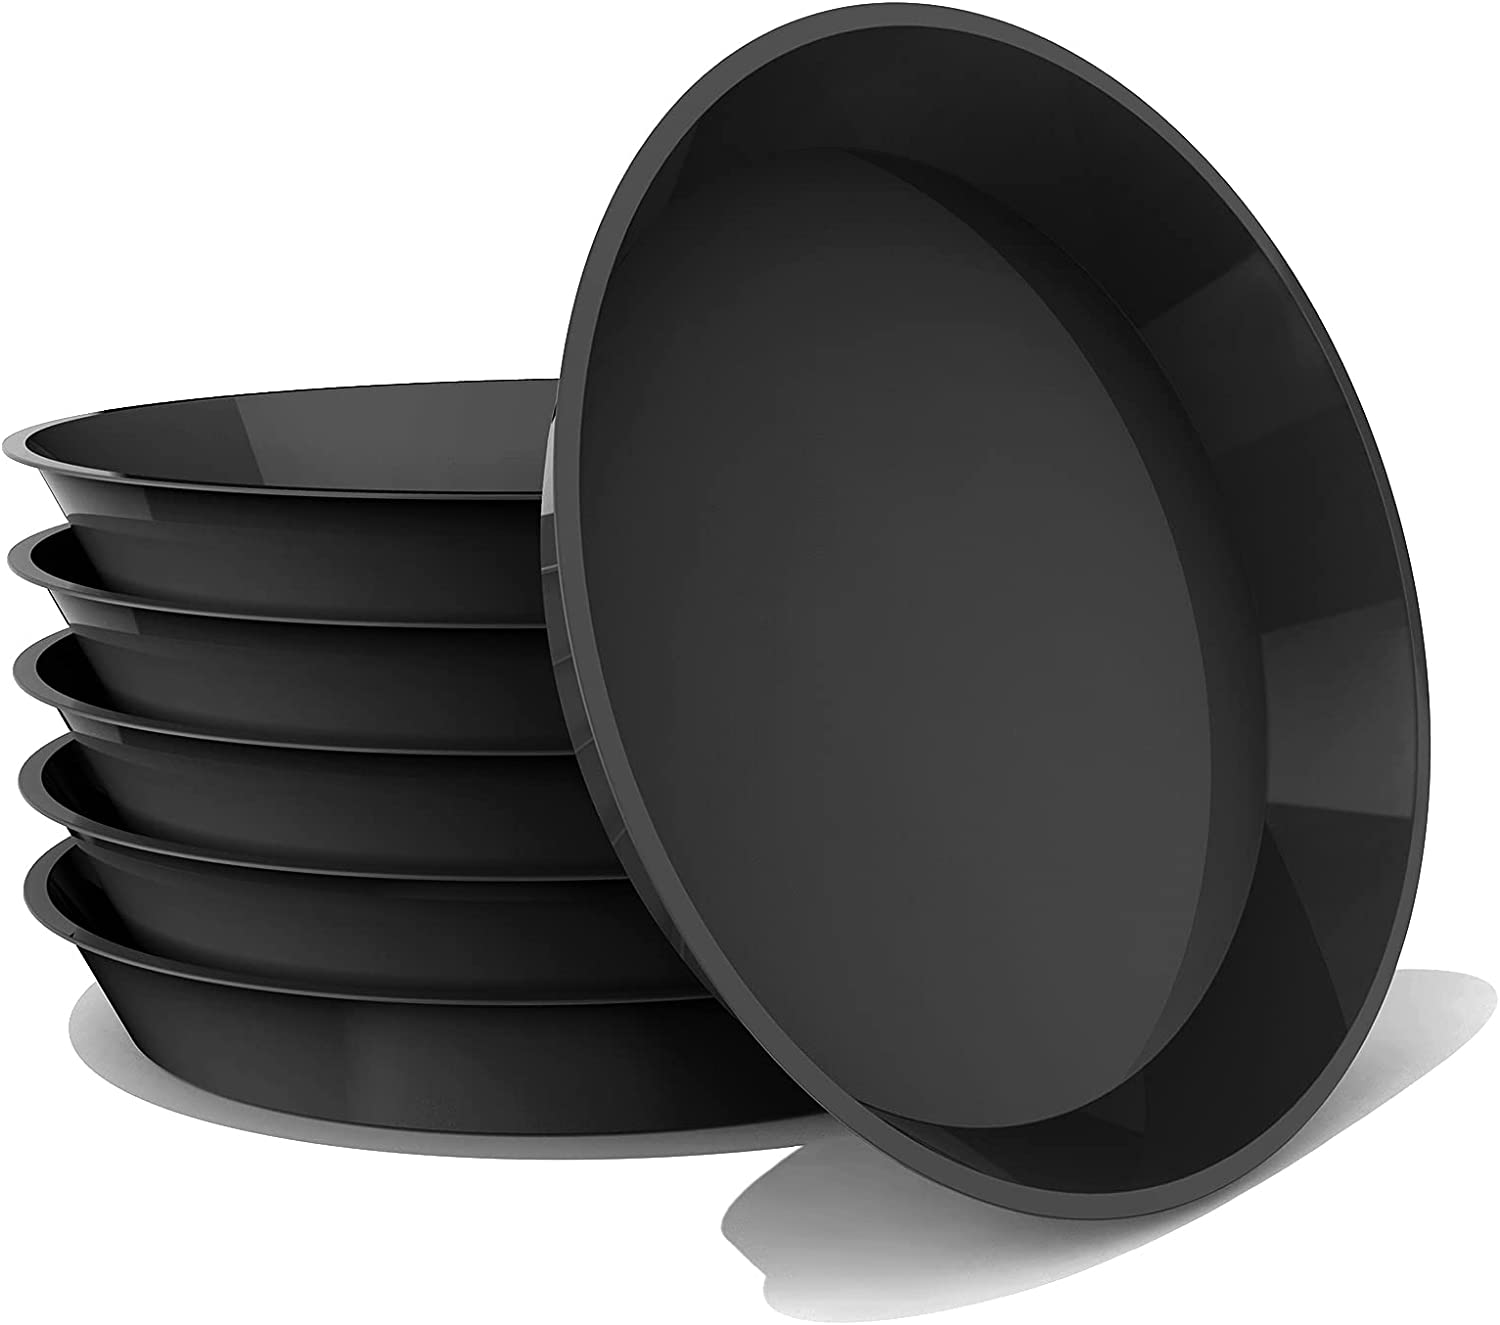 DUNPUTE Plant Saucer 6 Pack 6 Inch Plastic Plant Trays, Sturdy and Durable Flower Pot Containers Plant Pot Saucers for Indoor and Outdoor (6 Inch, Black)